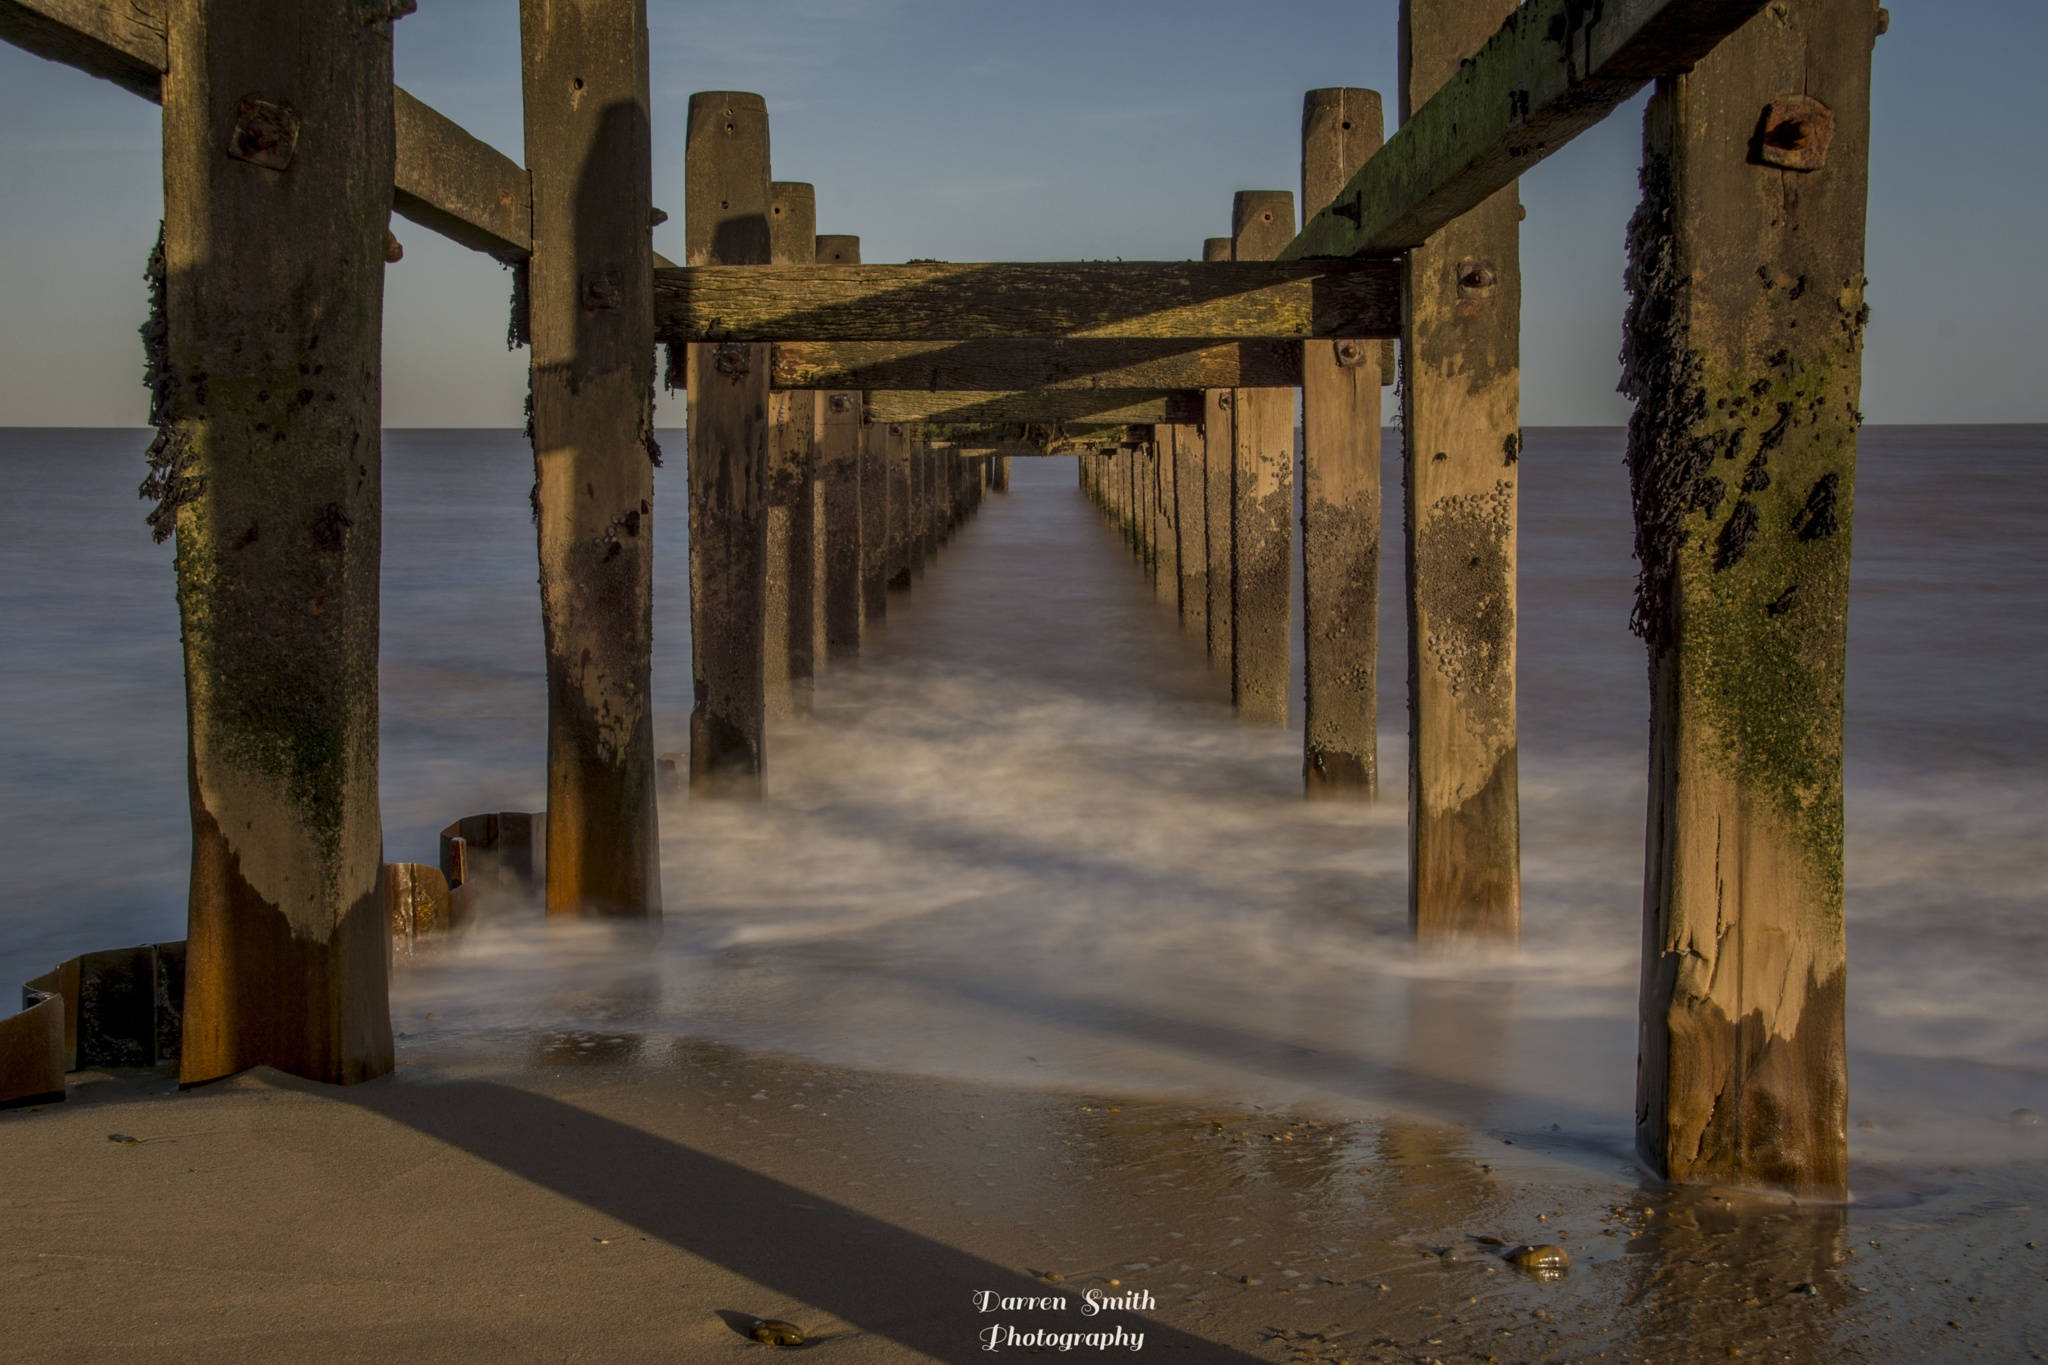 Corton Beach by Darren Smith